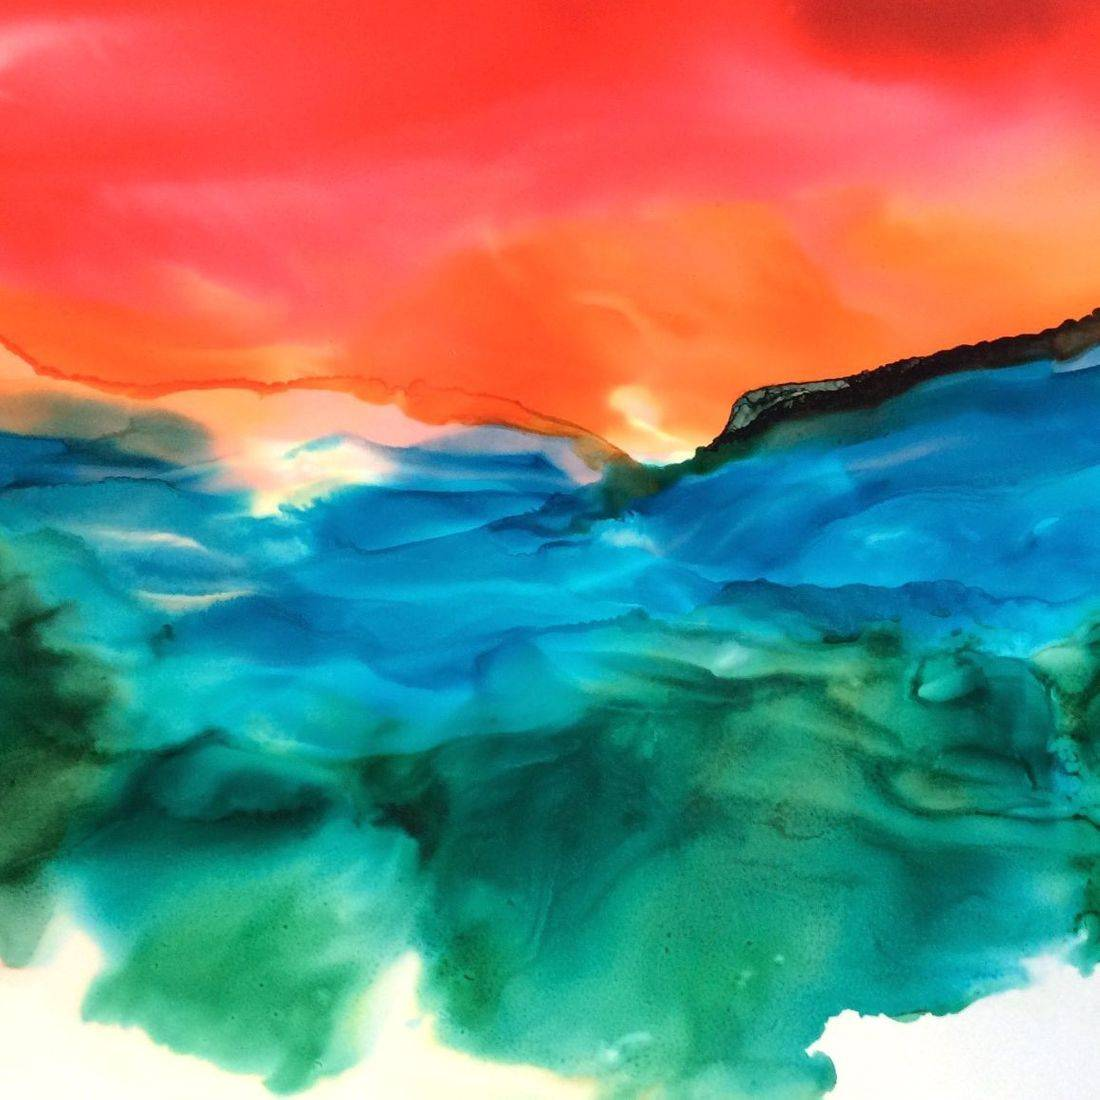 Abstract Seascape Painting, Alcohol Ink on Yupo Paper, by Art And Soul By The Lake